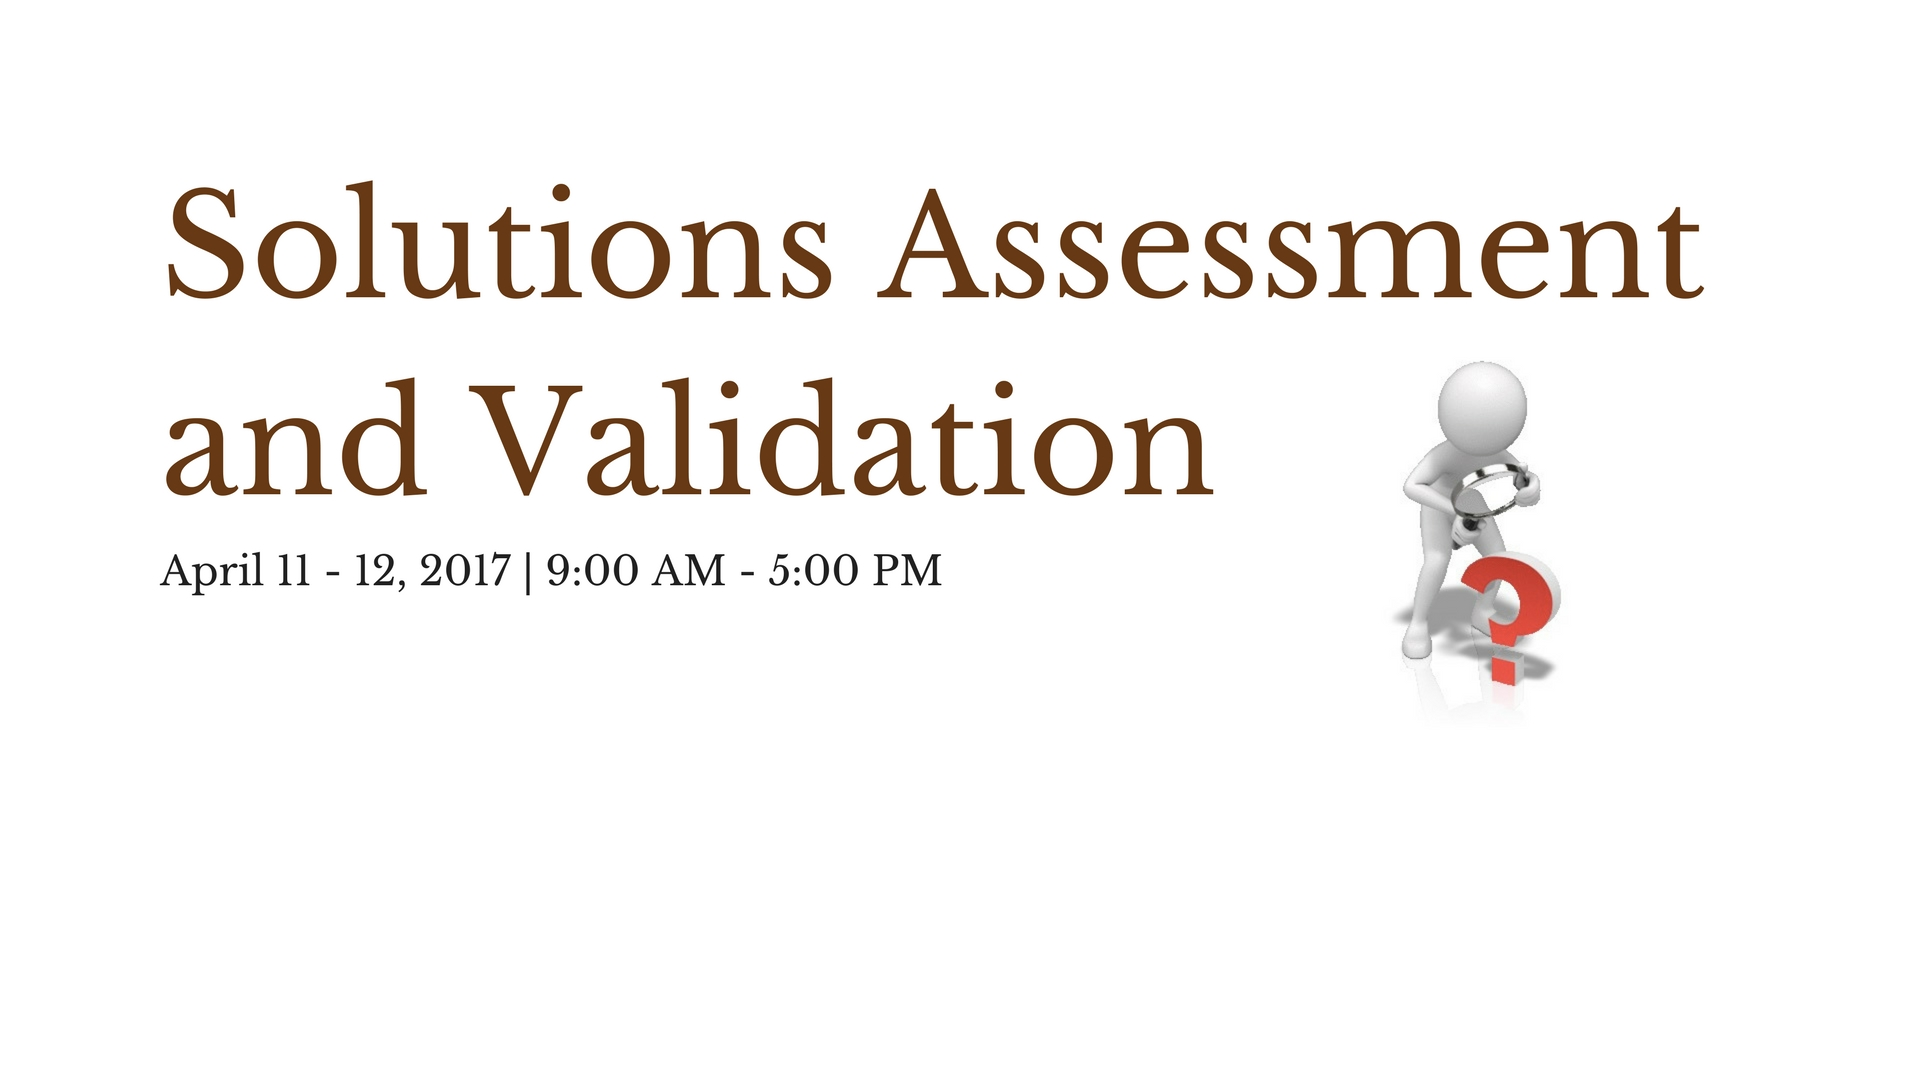 Solutions Assessment and Validation